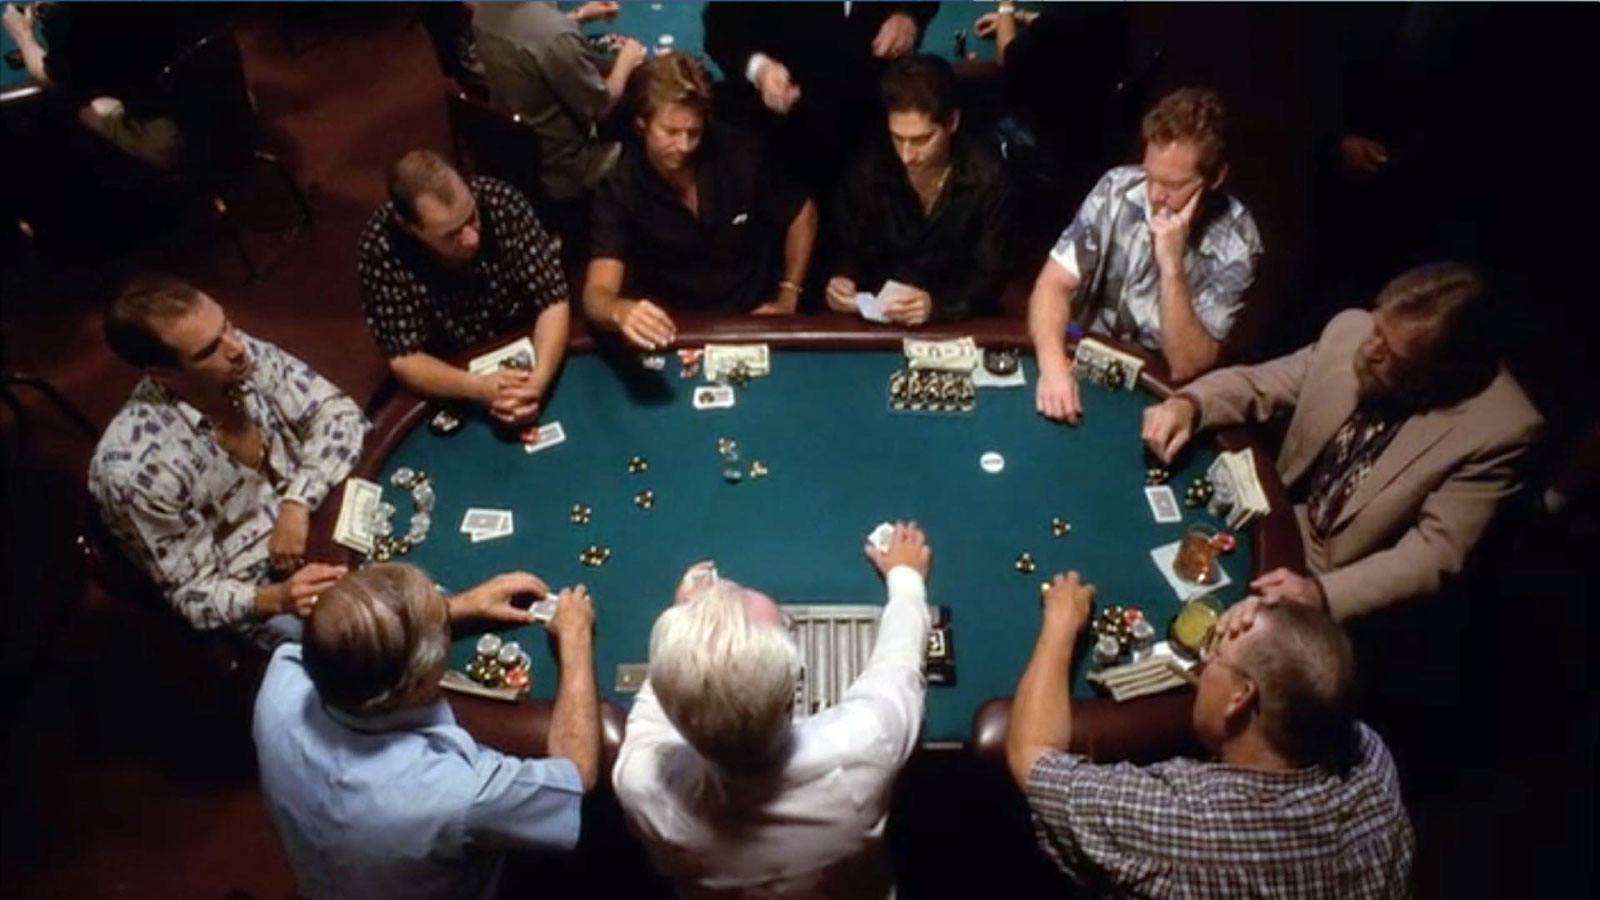 A Trusted Site to Play Online Casino